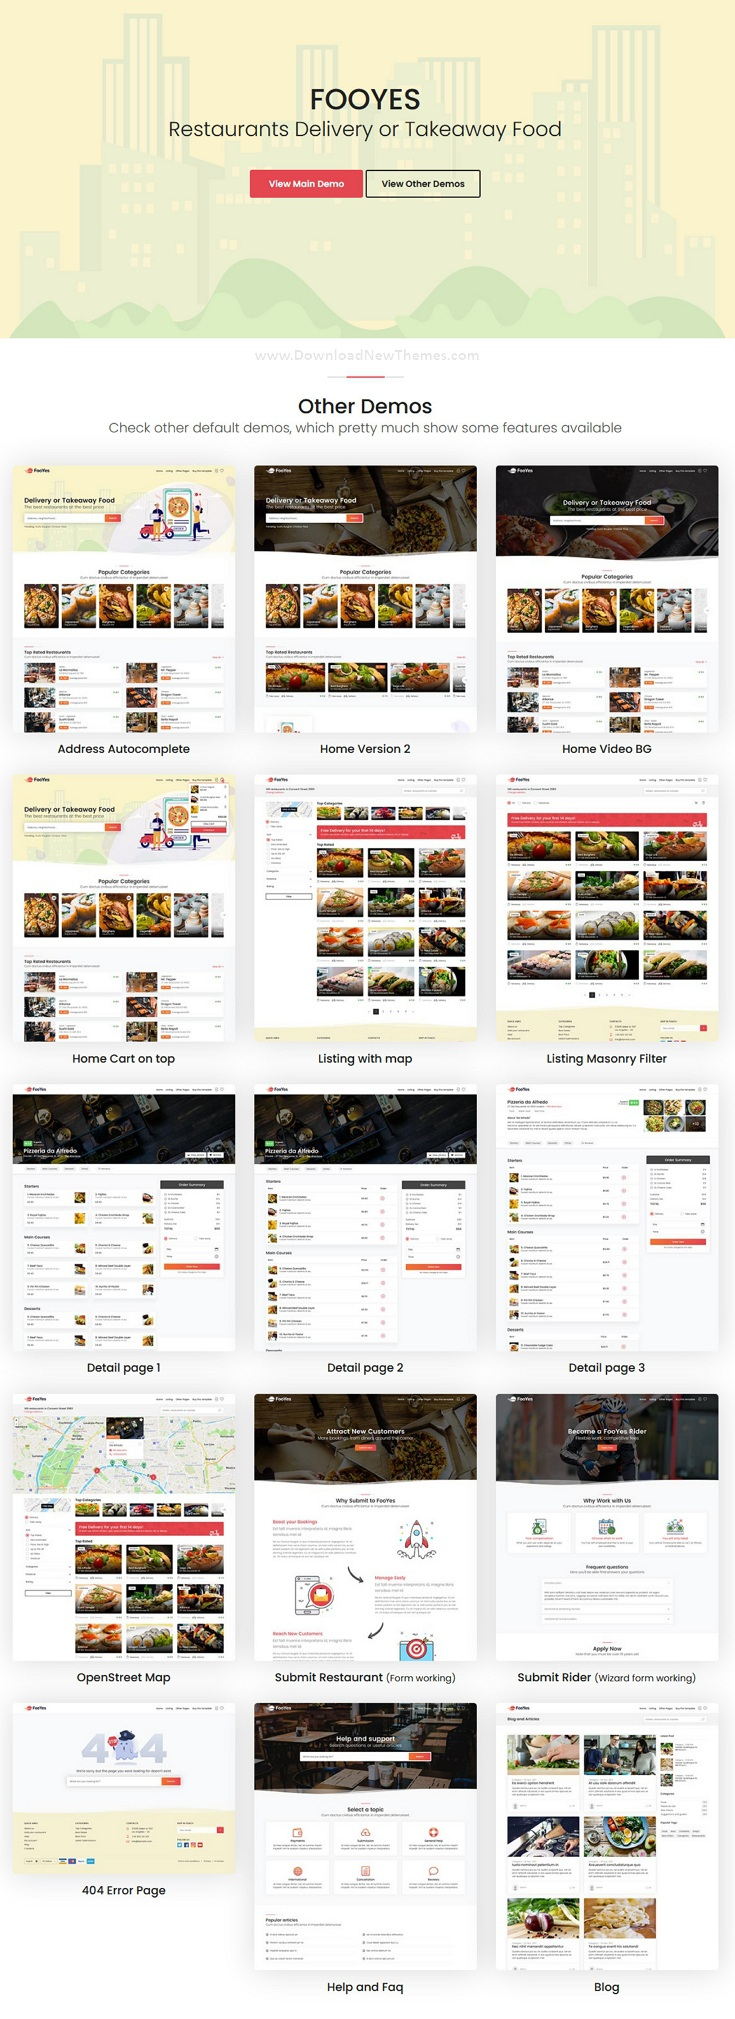 Delivery or Takeaway Food Site Template